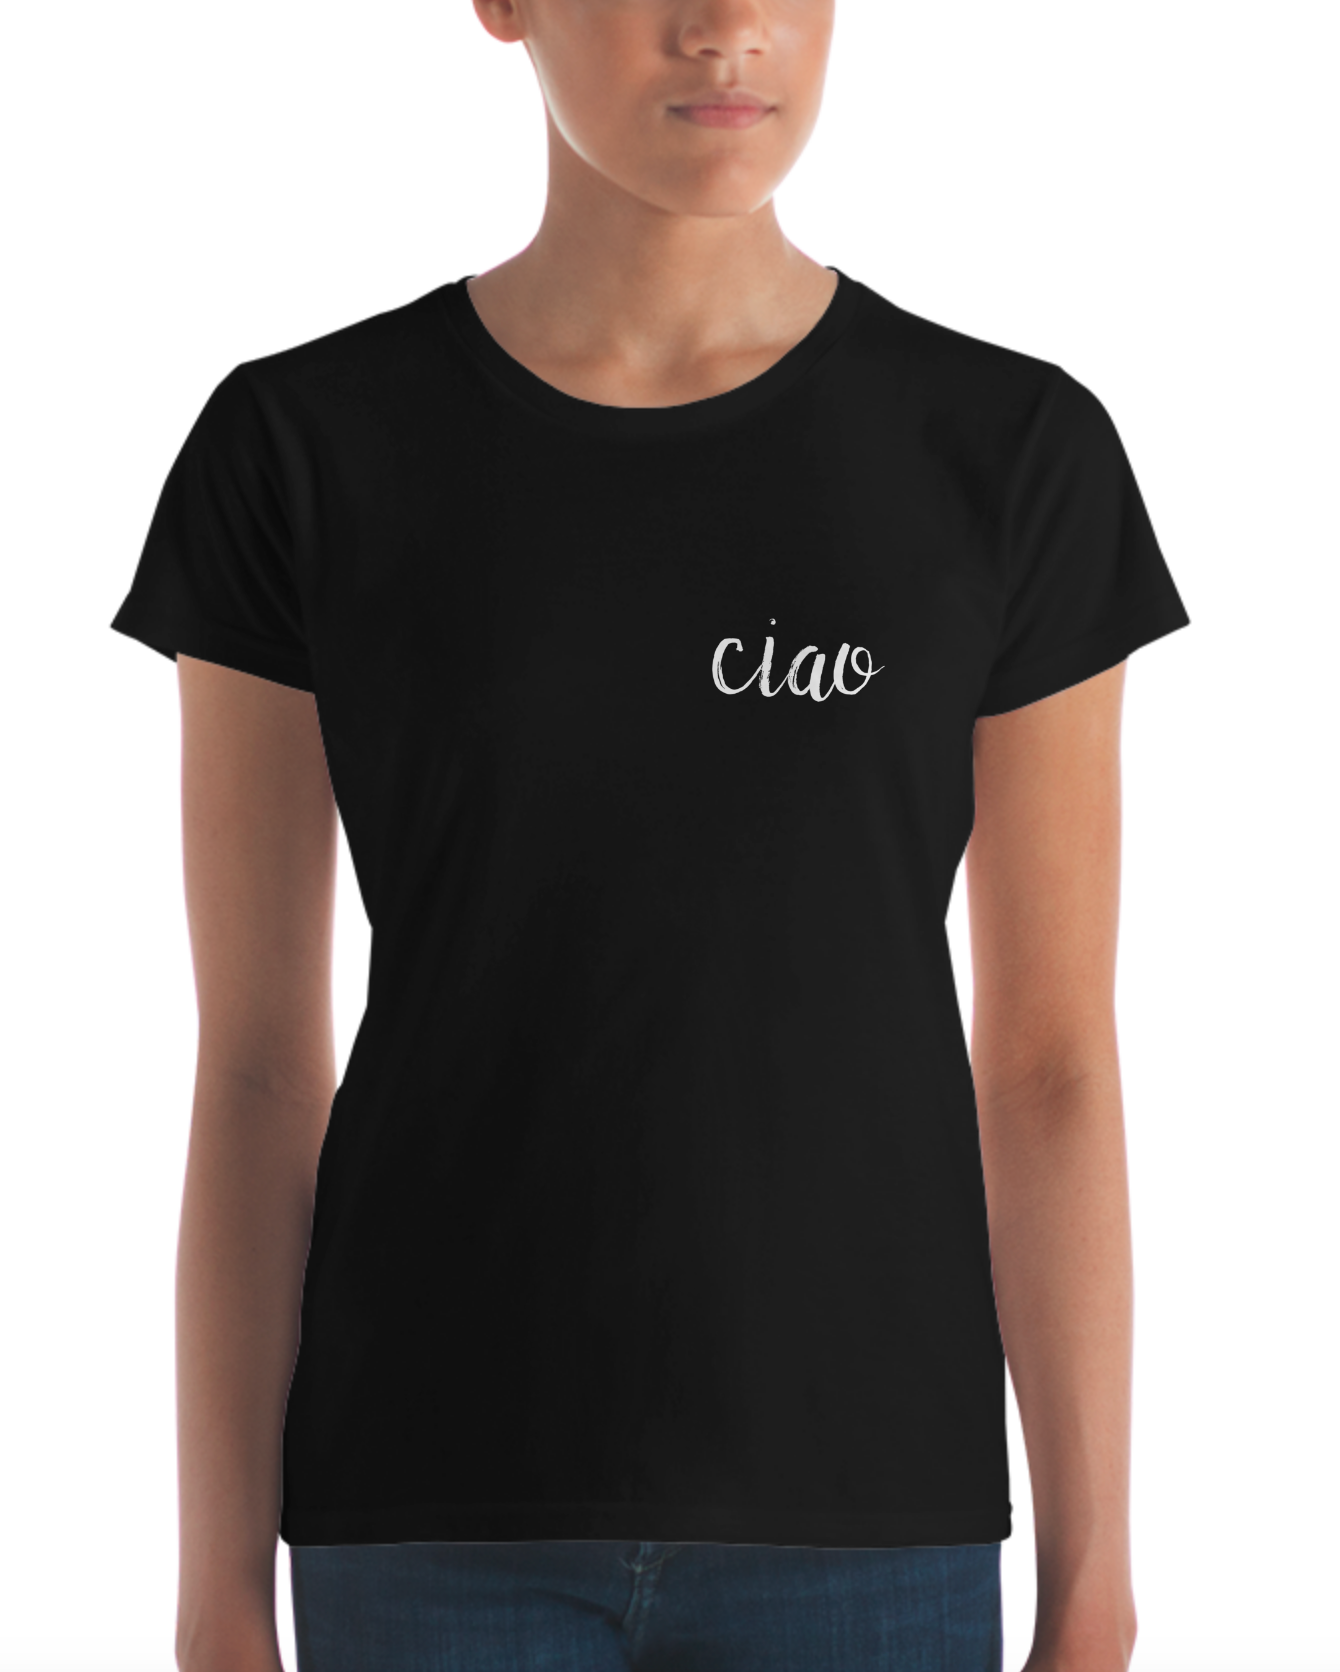 Ciao White Text Black Women's Short Sleeve T-shirt